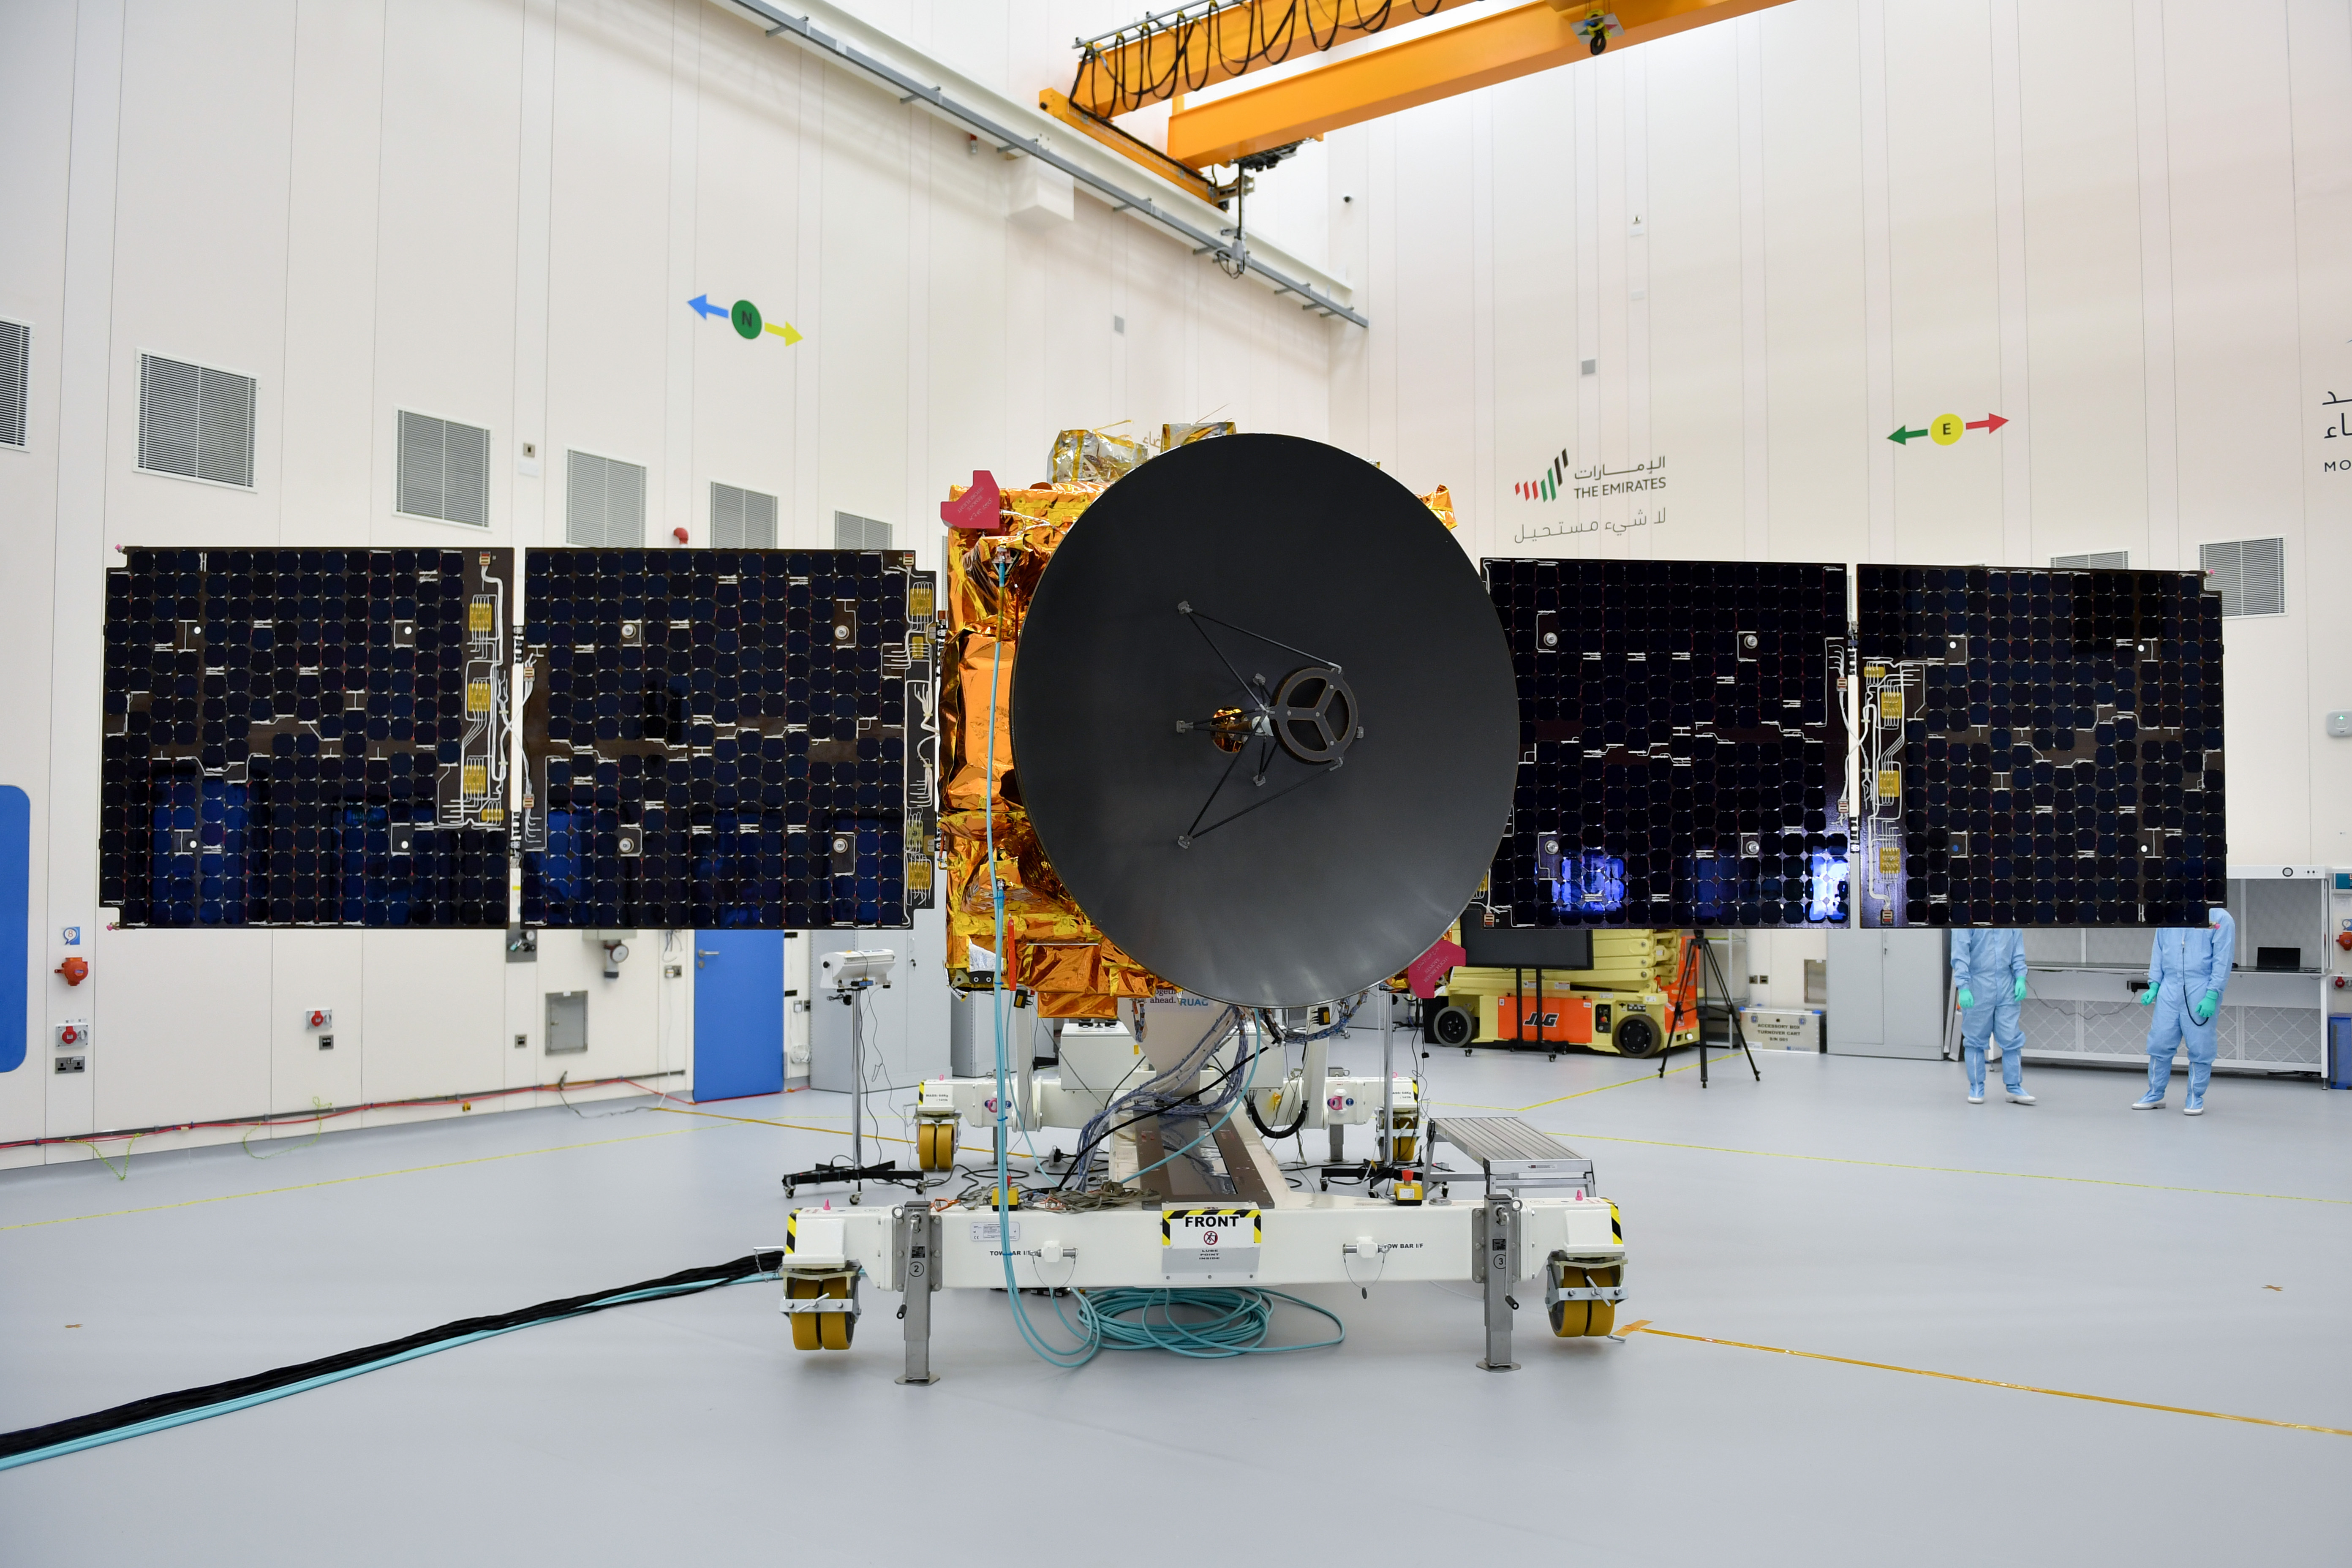 Emirates Mars Mission Announces The Live Stream Link To The Launch